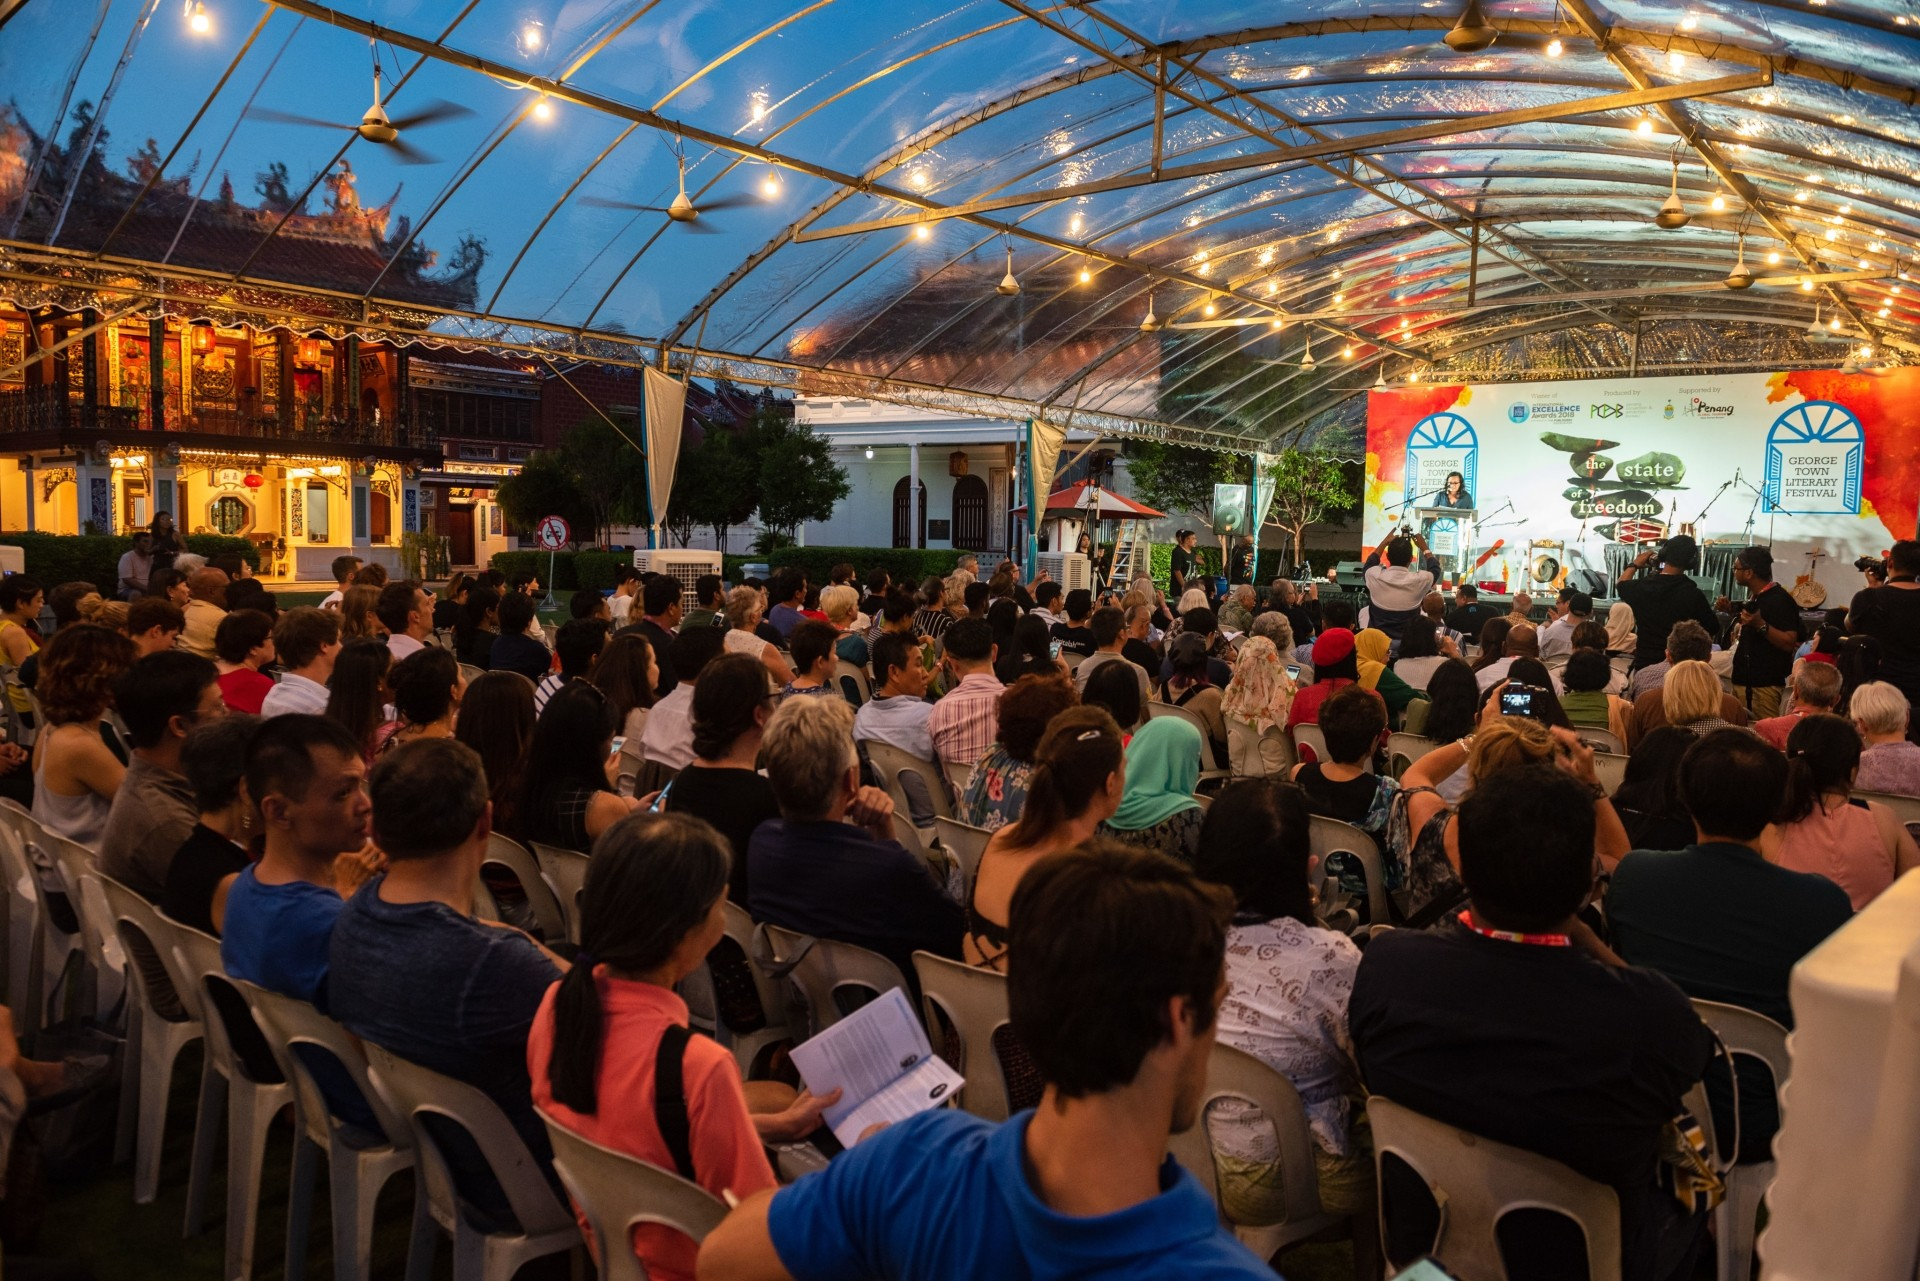 One of the sessions held during George Town Literary Festival 2018. Photo: ttgeorgetown